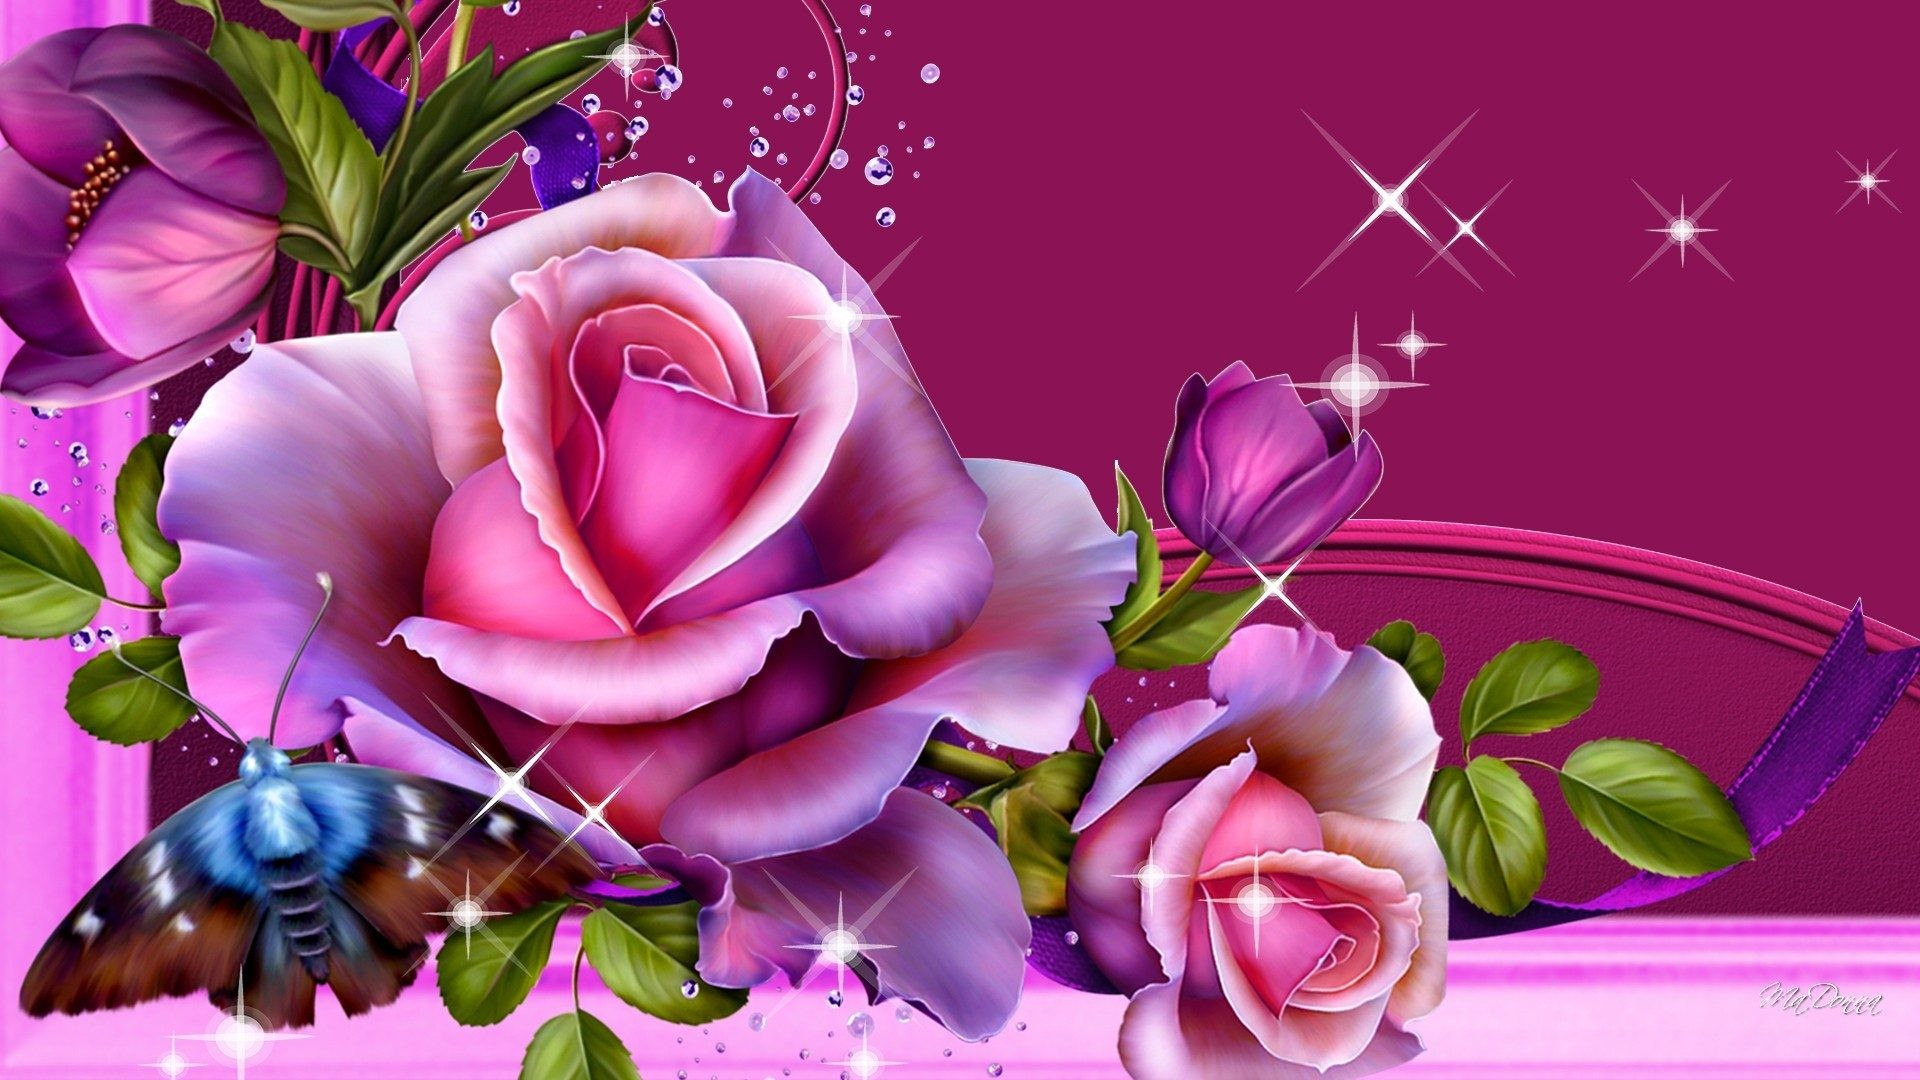 Bright Beautiful Shine Sparkle Blossoms Majenta Buds Butterfly Pink Glow  Roses Wallpaper Flowers Rose – 1920×1081